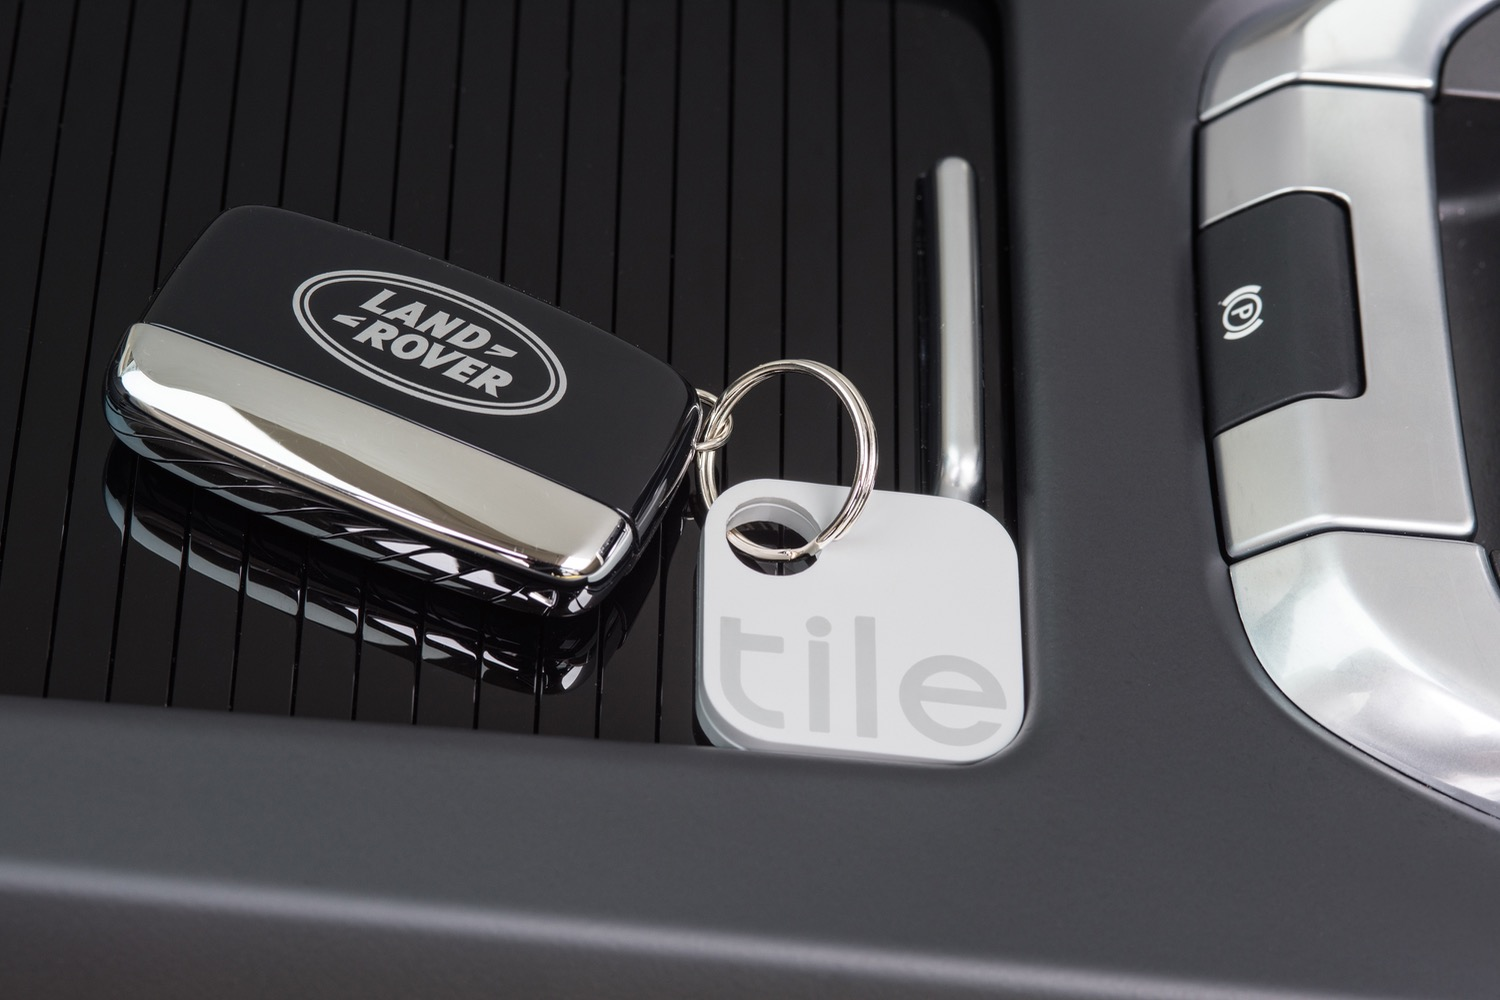 With Tile Integration Your Jag Or Land Rover Can Find